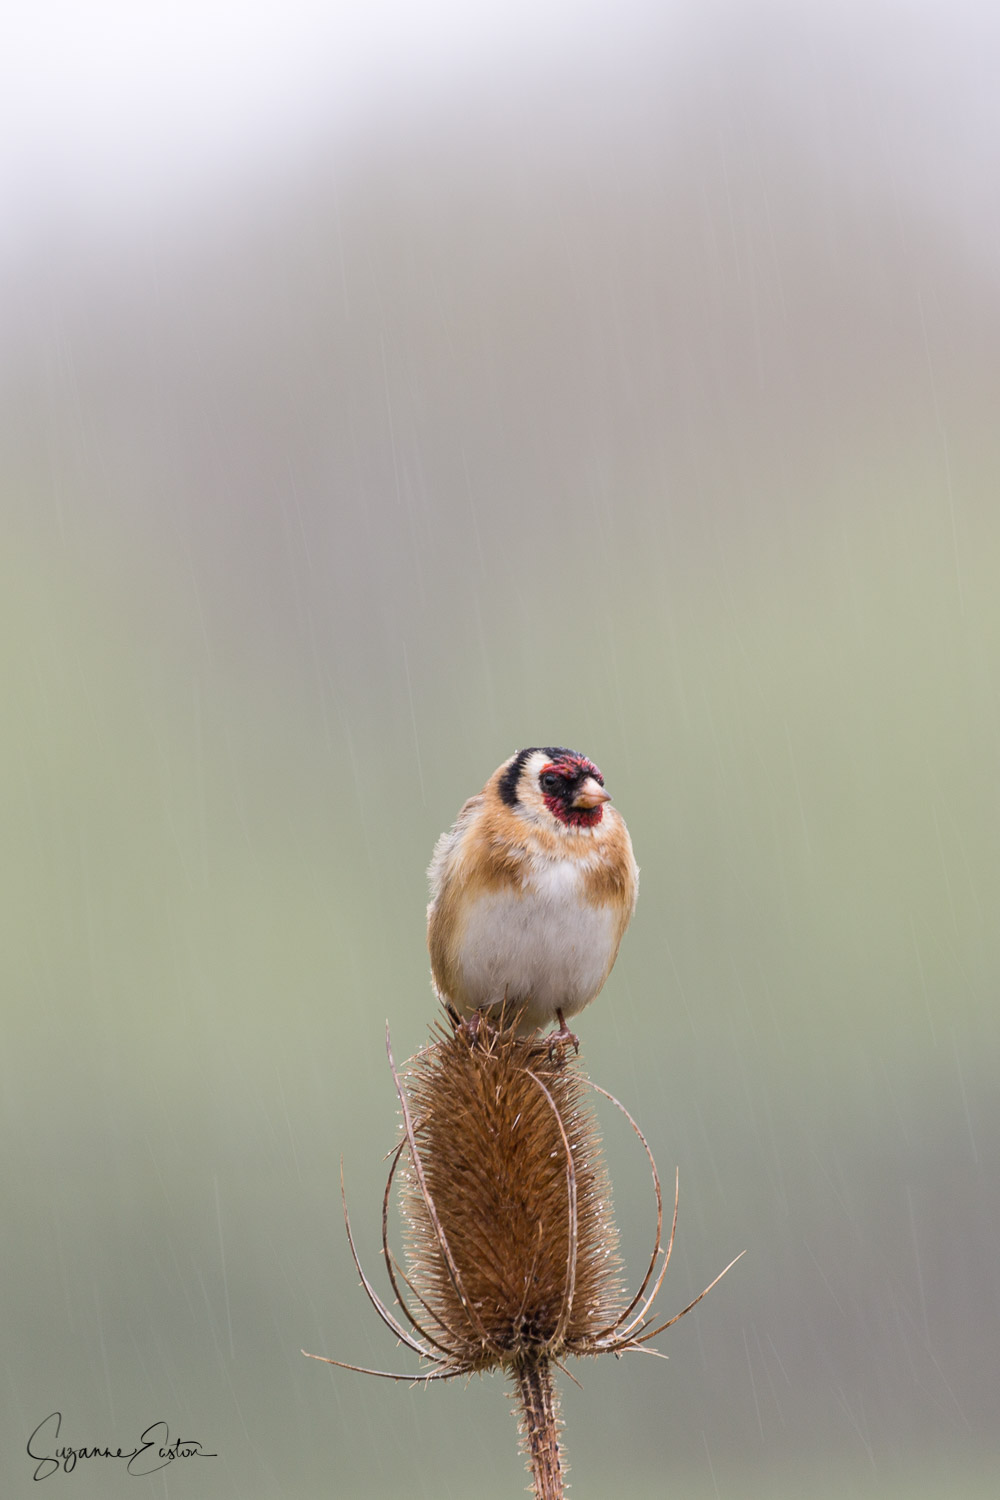 A wet goldfinch sitting on a thistle in the rain